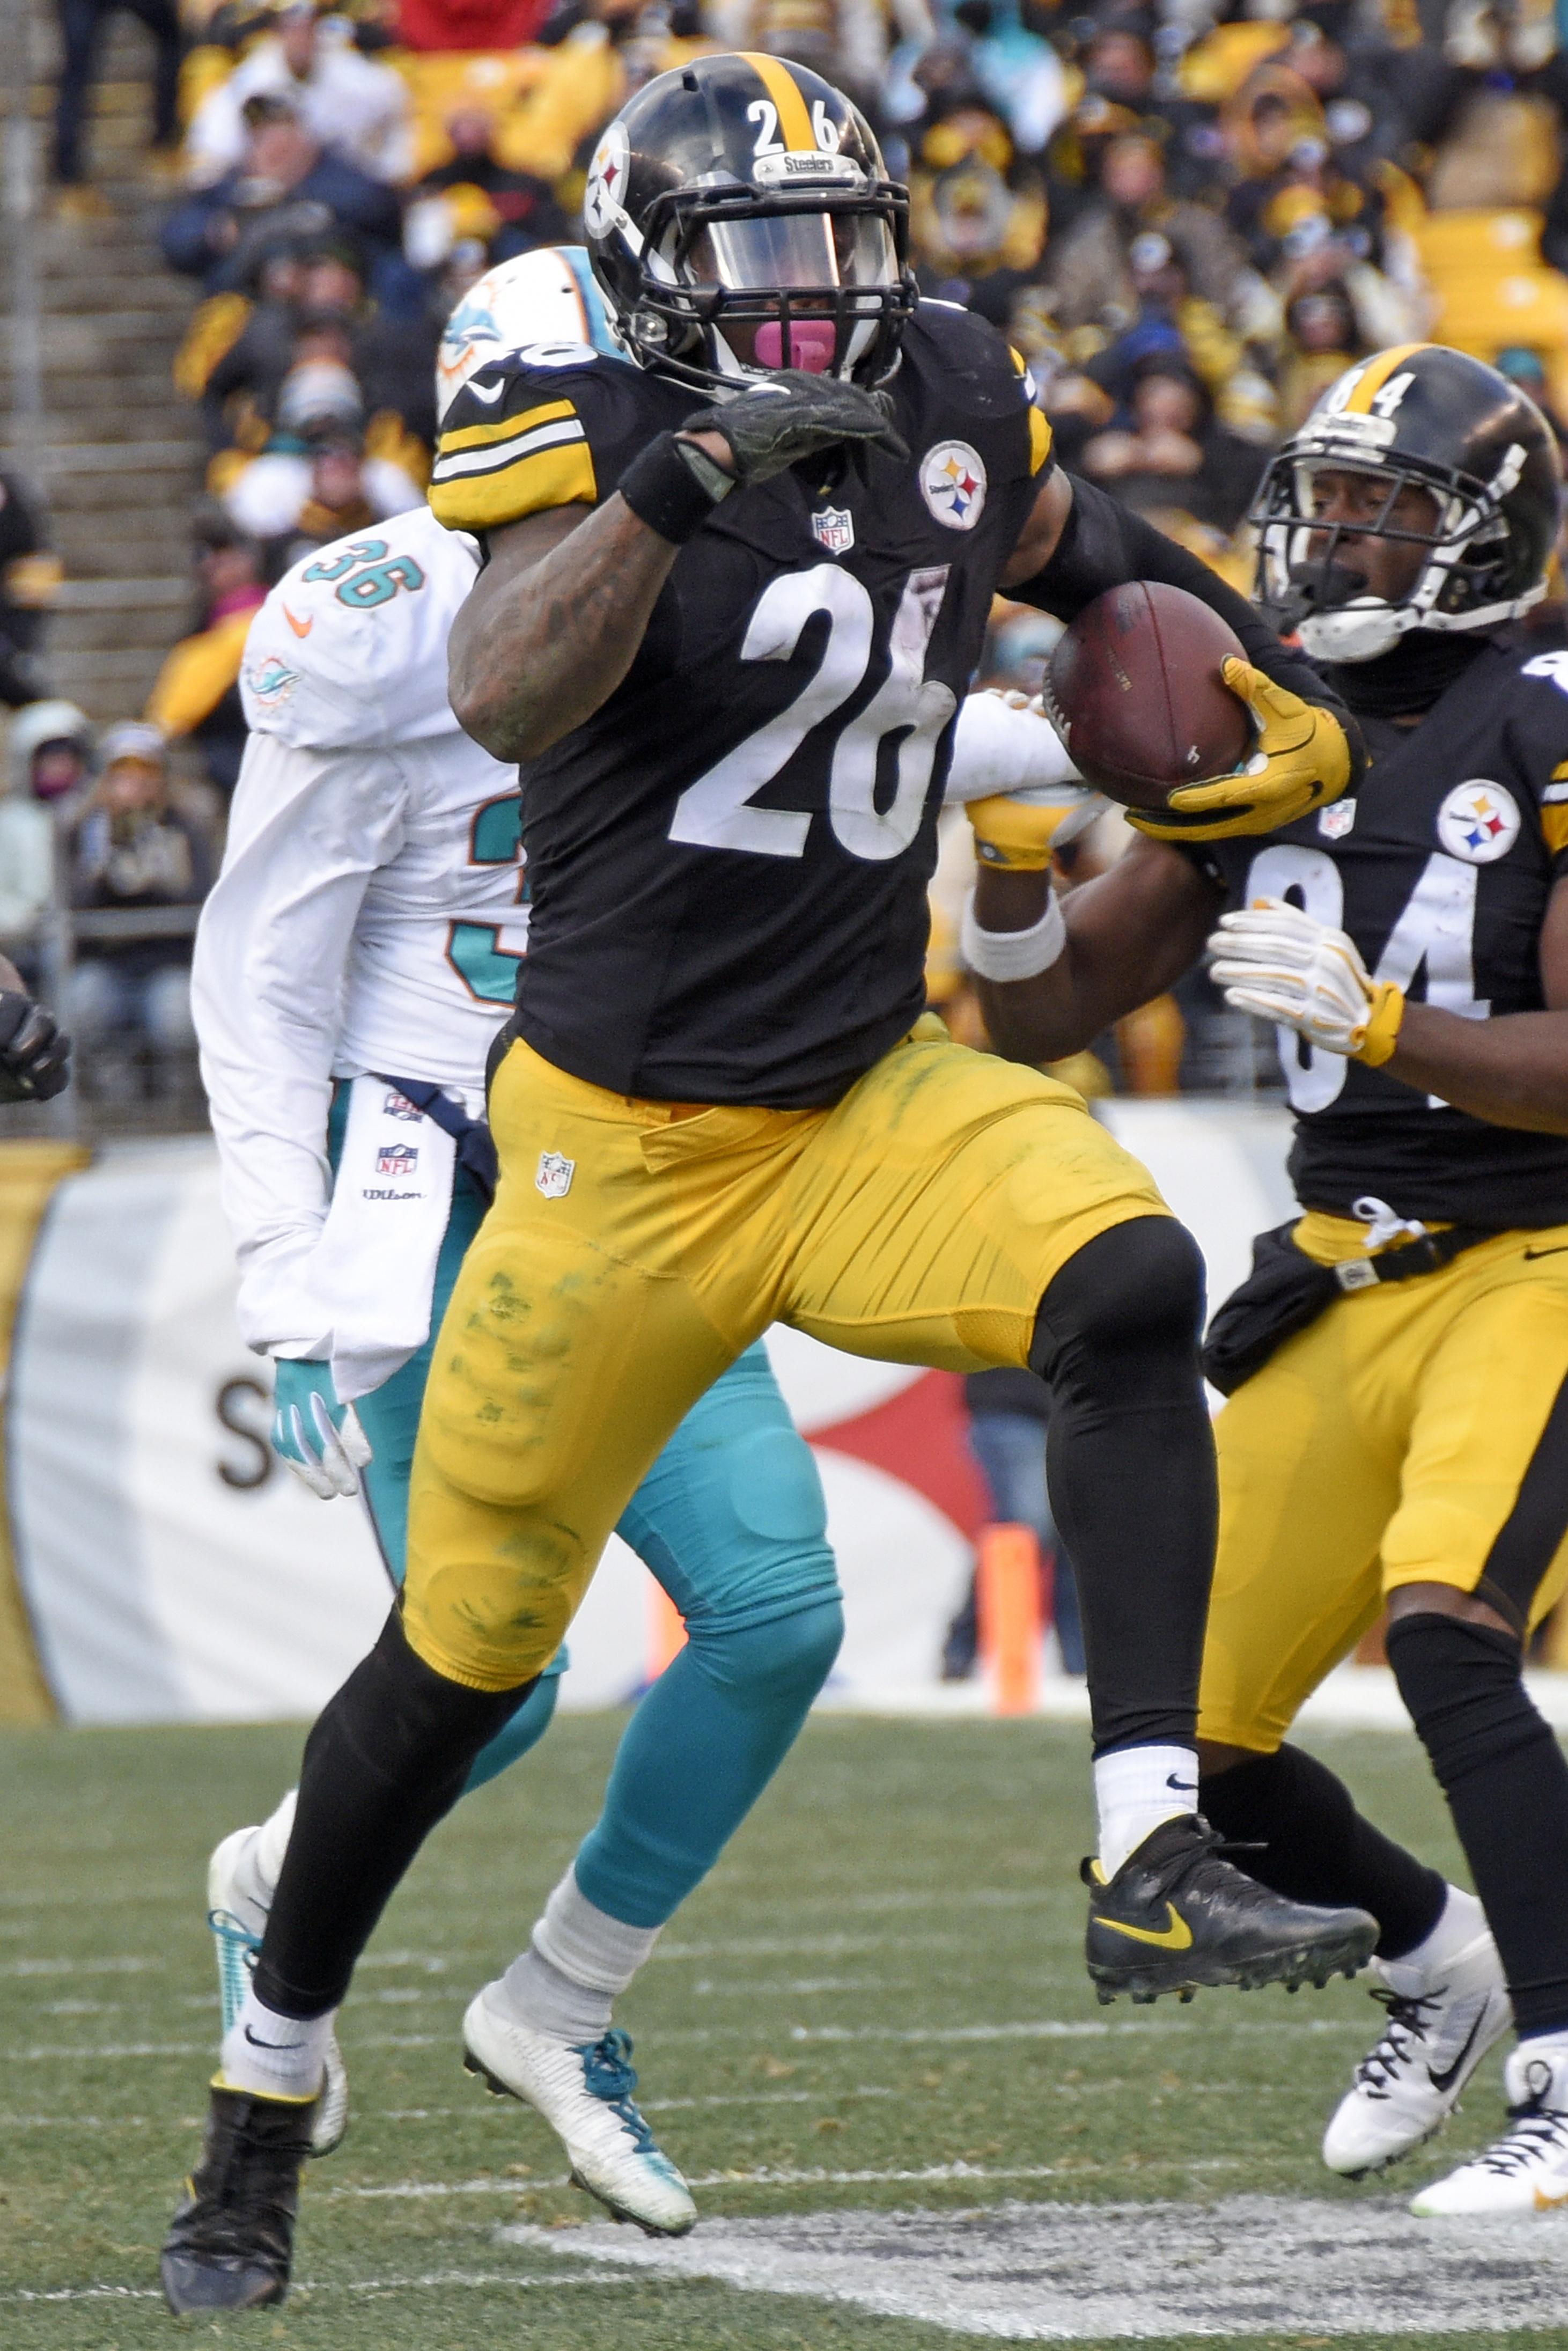 Dolphins_steelers_football_67183